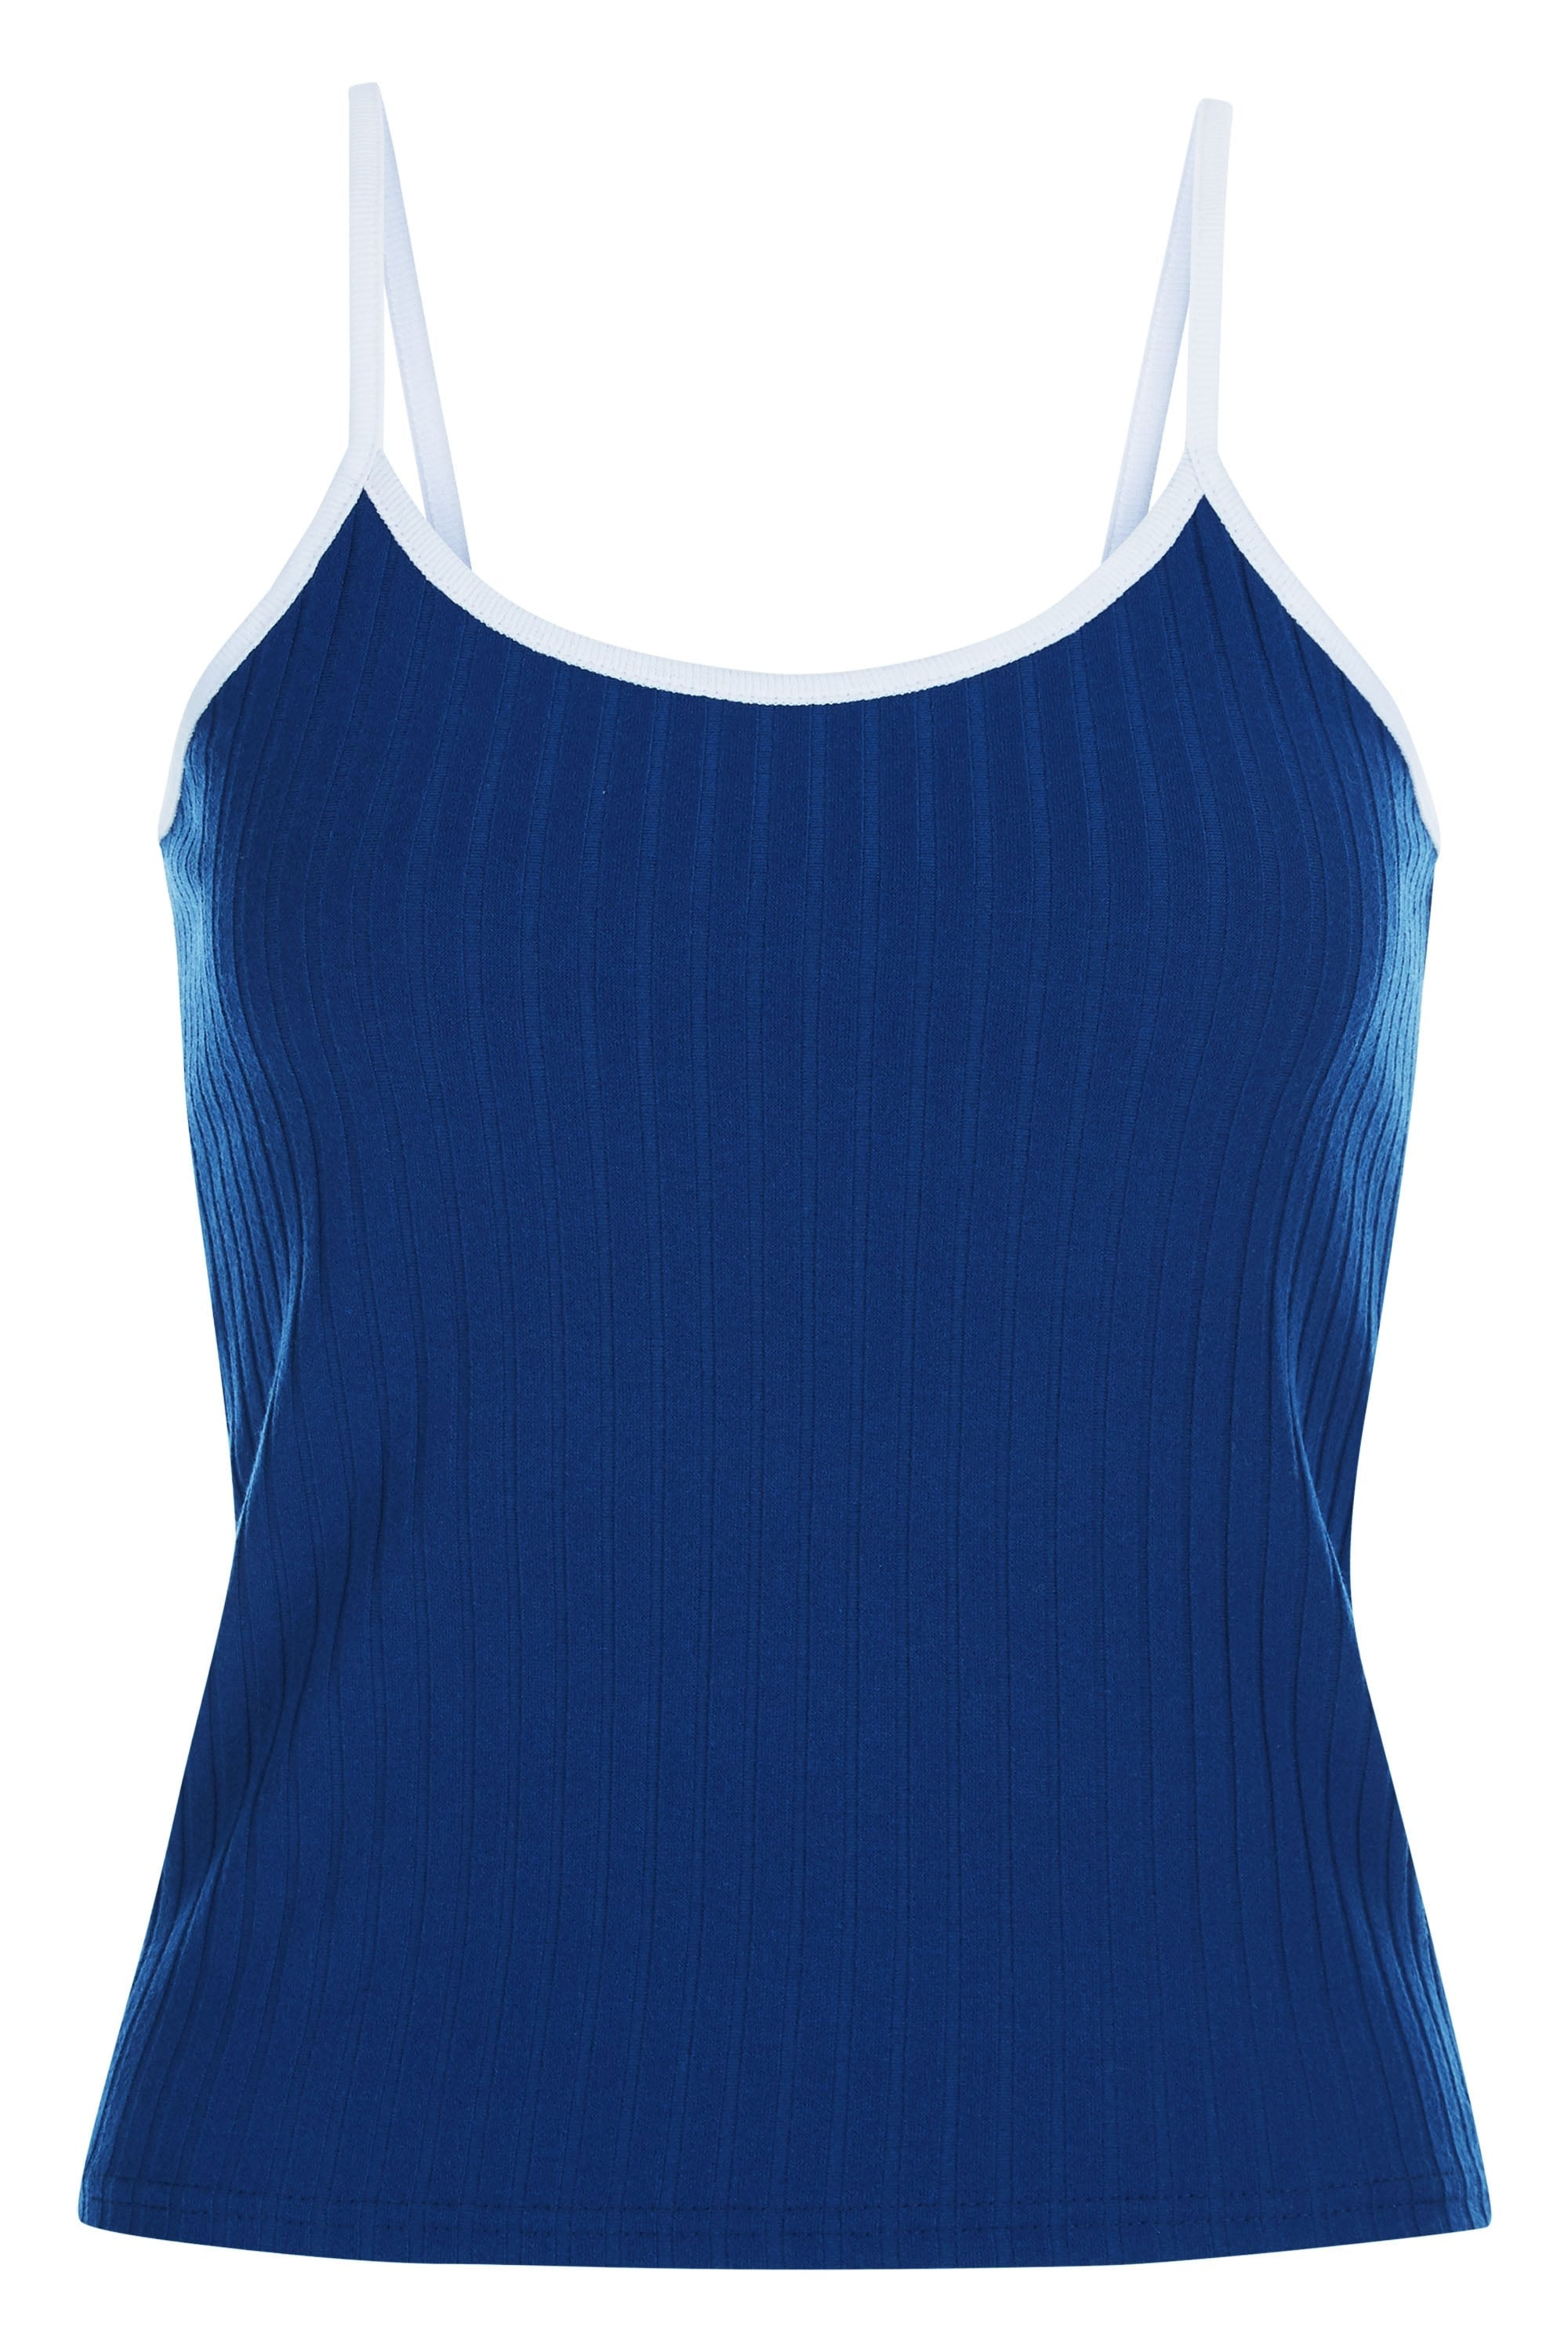 New Retro ribbed tank top with contrast edge